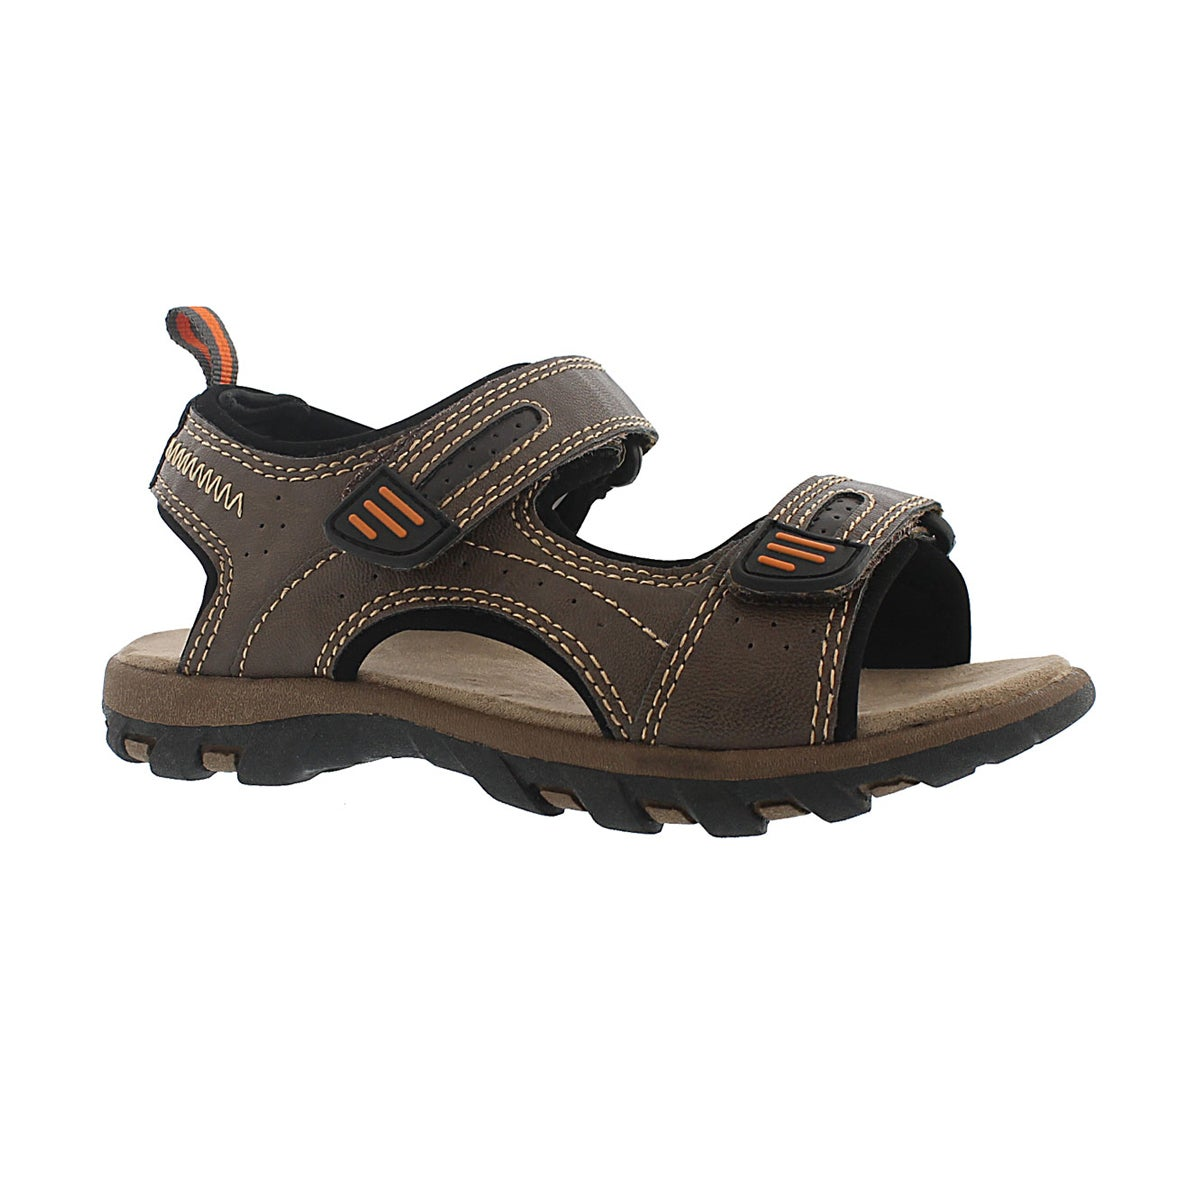 Boys' EMMETT brown 2 strap sport sandals